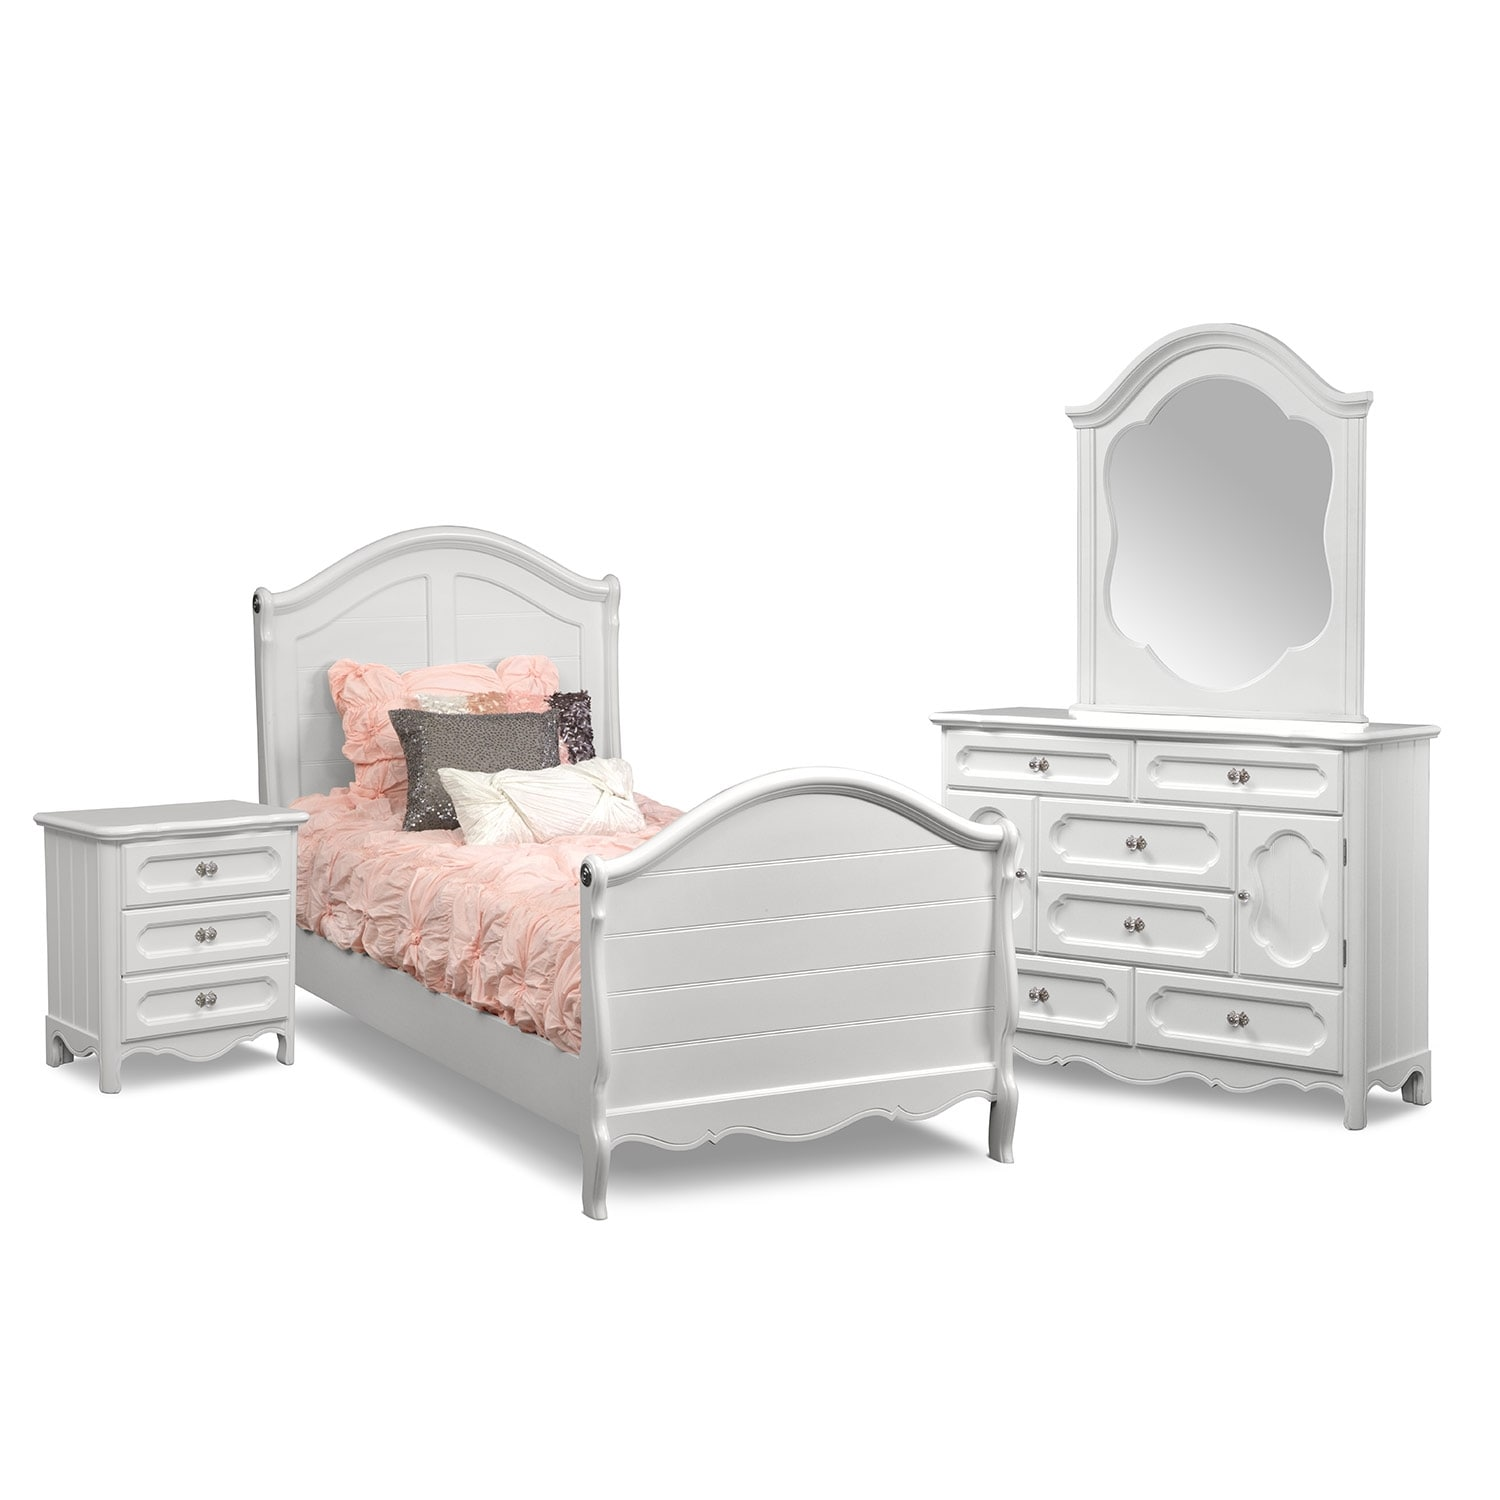 Carly 6 piece full bedroom set white value city furniture for White full bedroom furniture sets